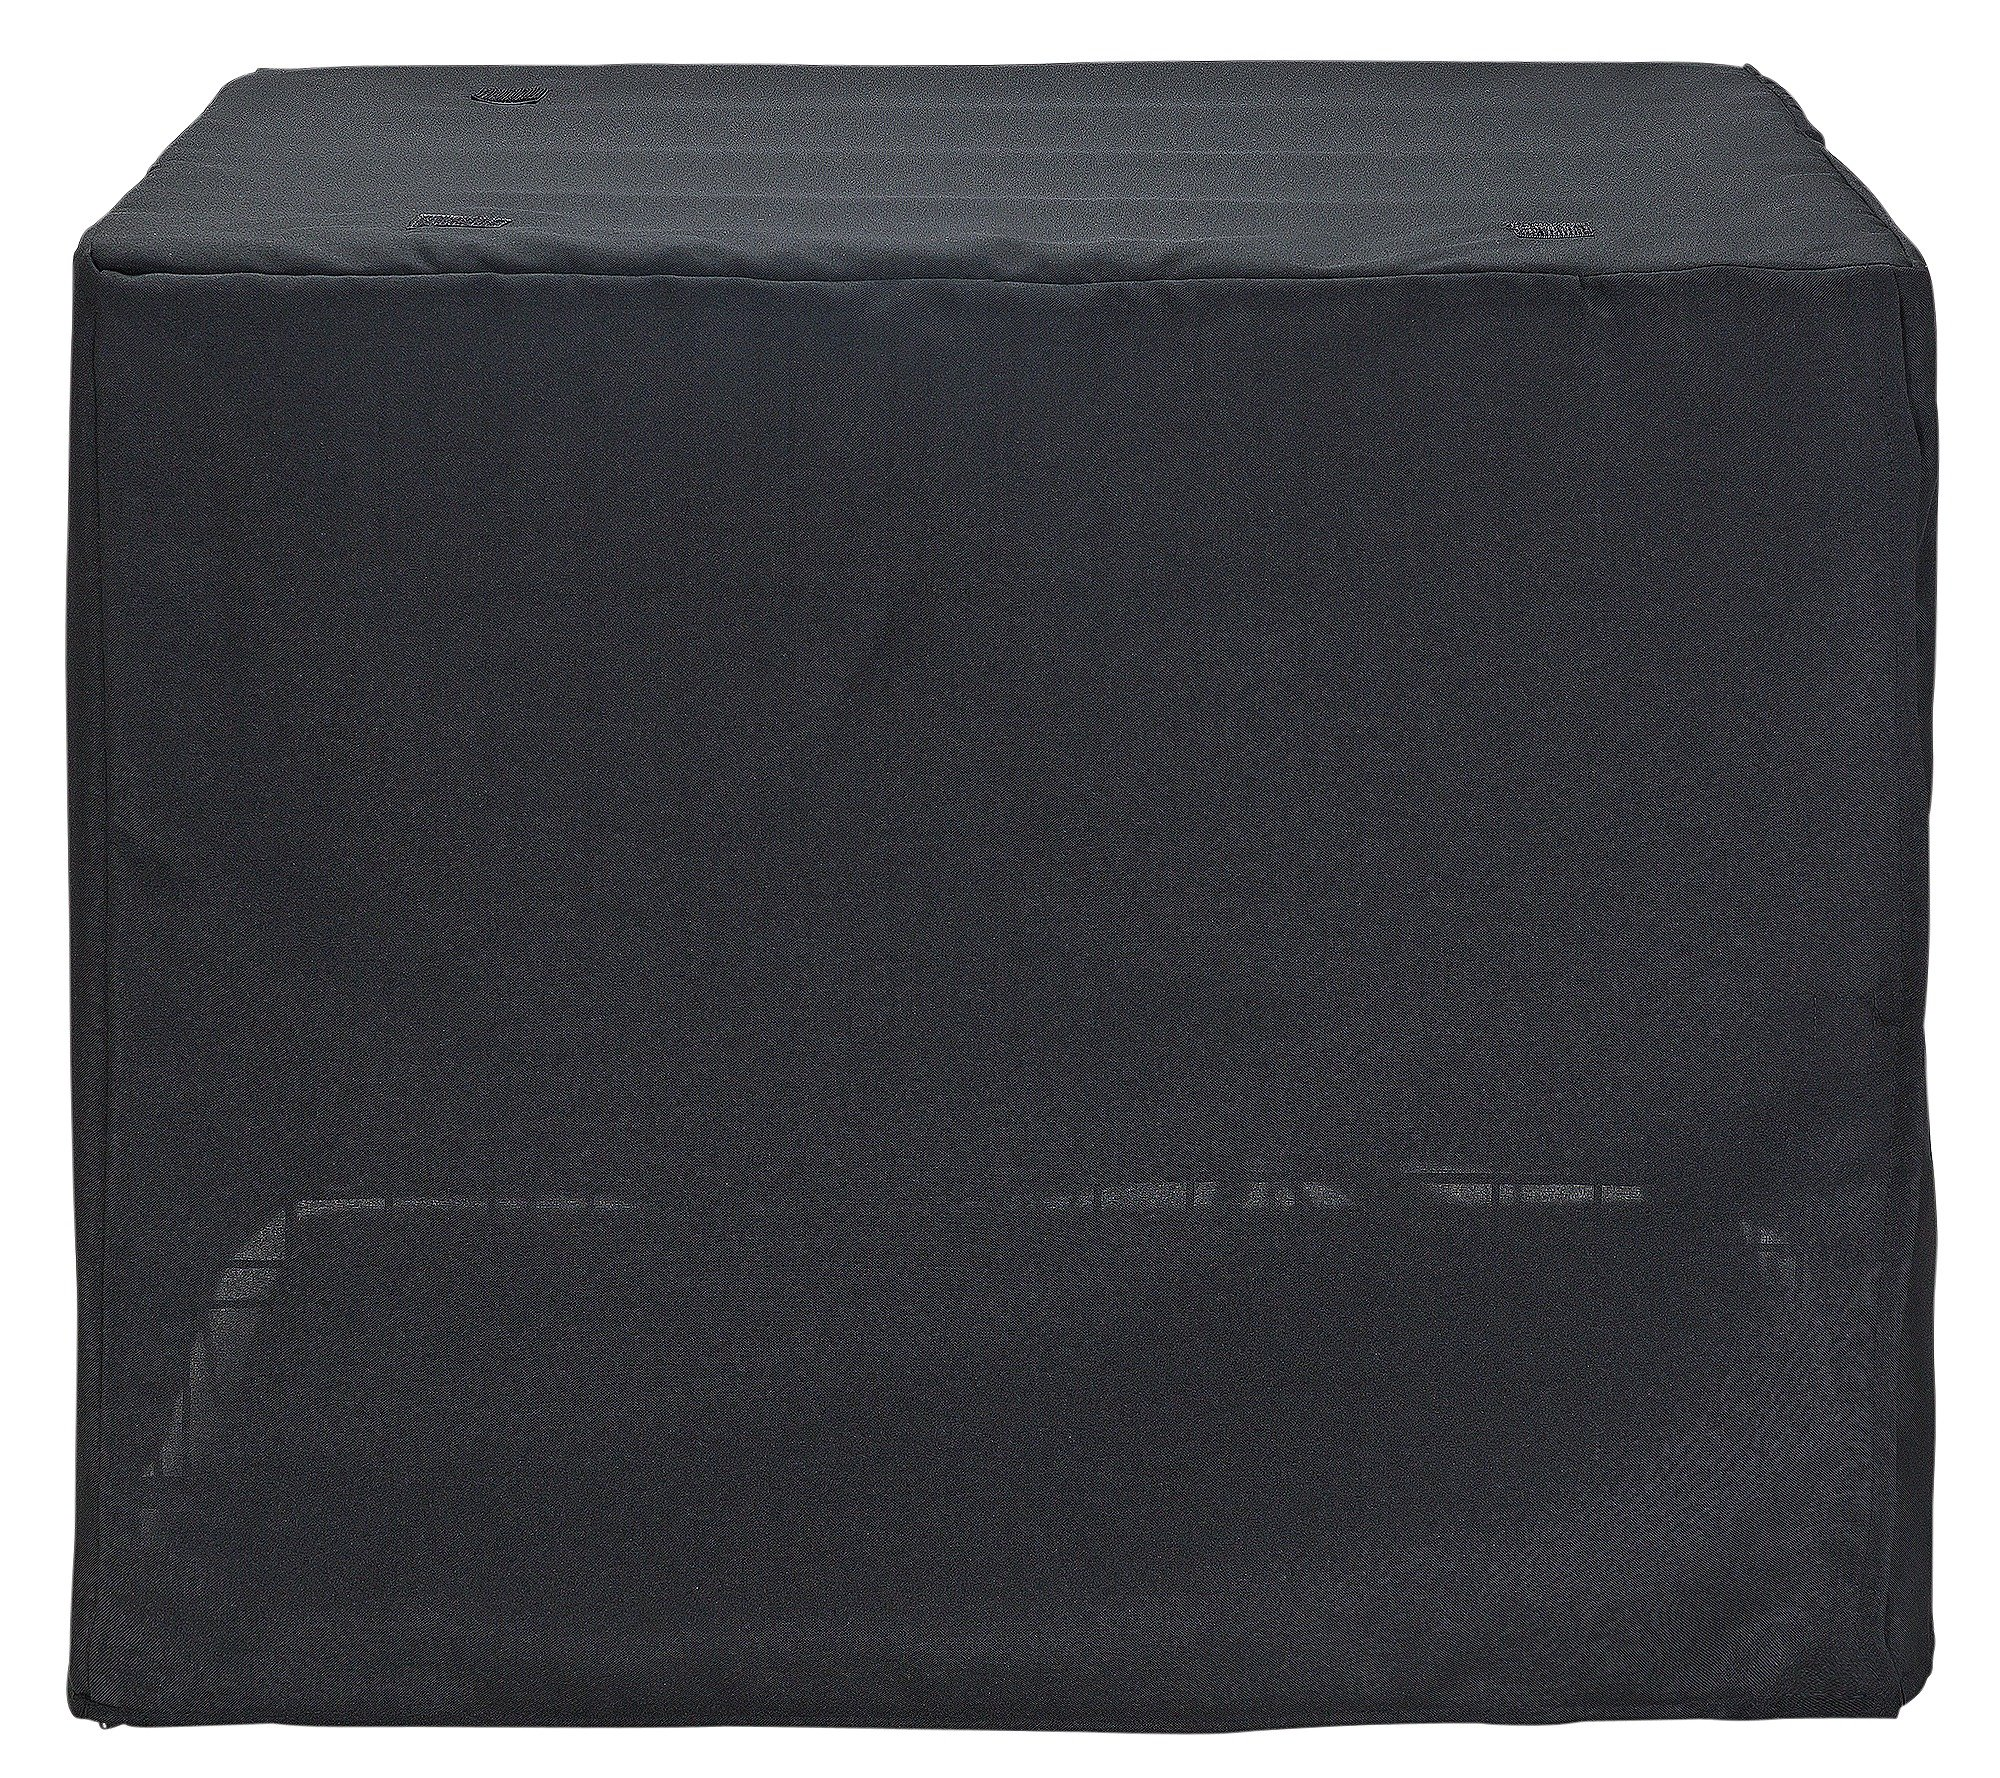 King Pets Crate Cover - Medium